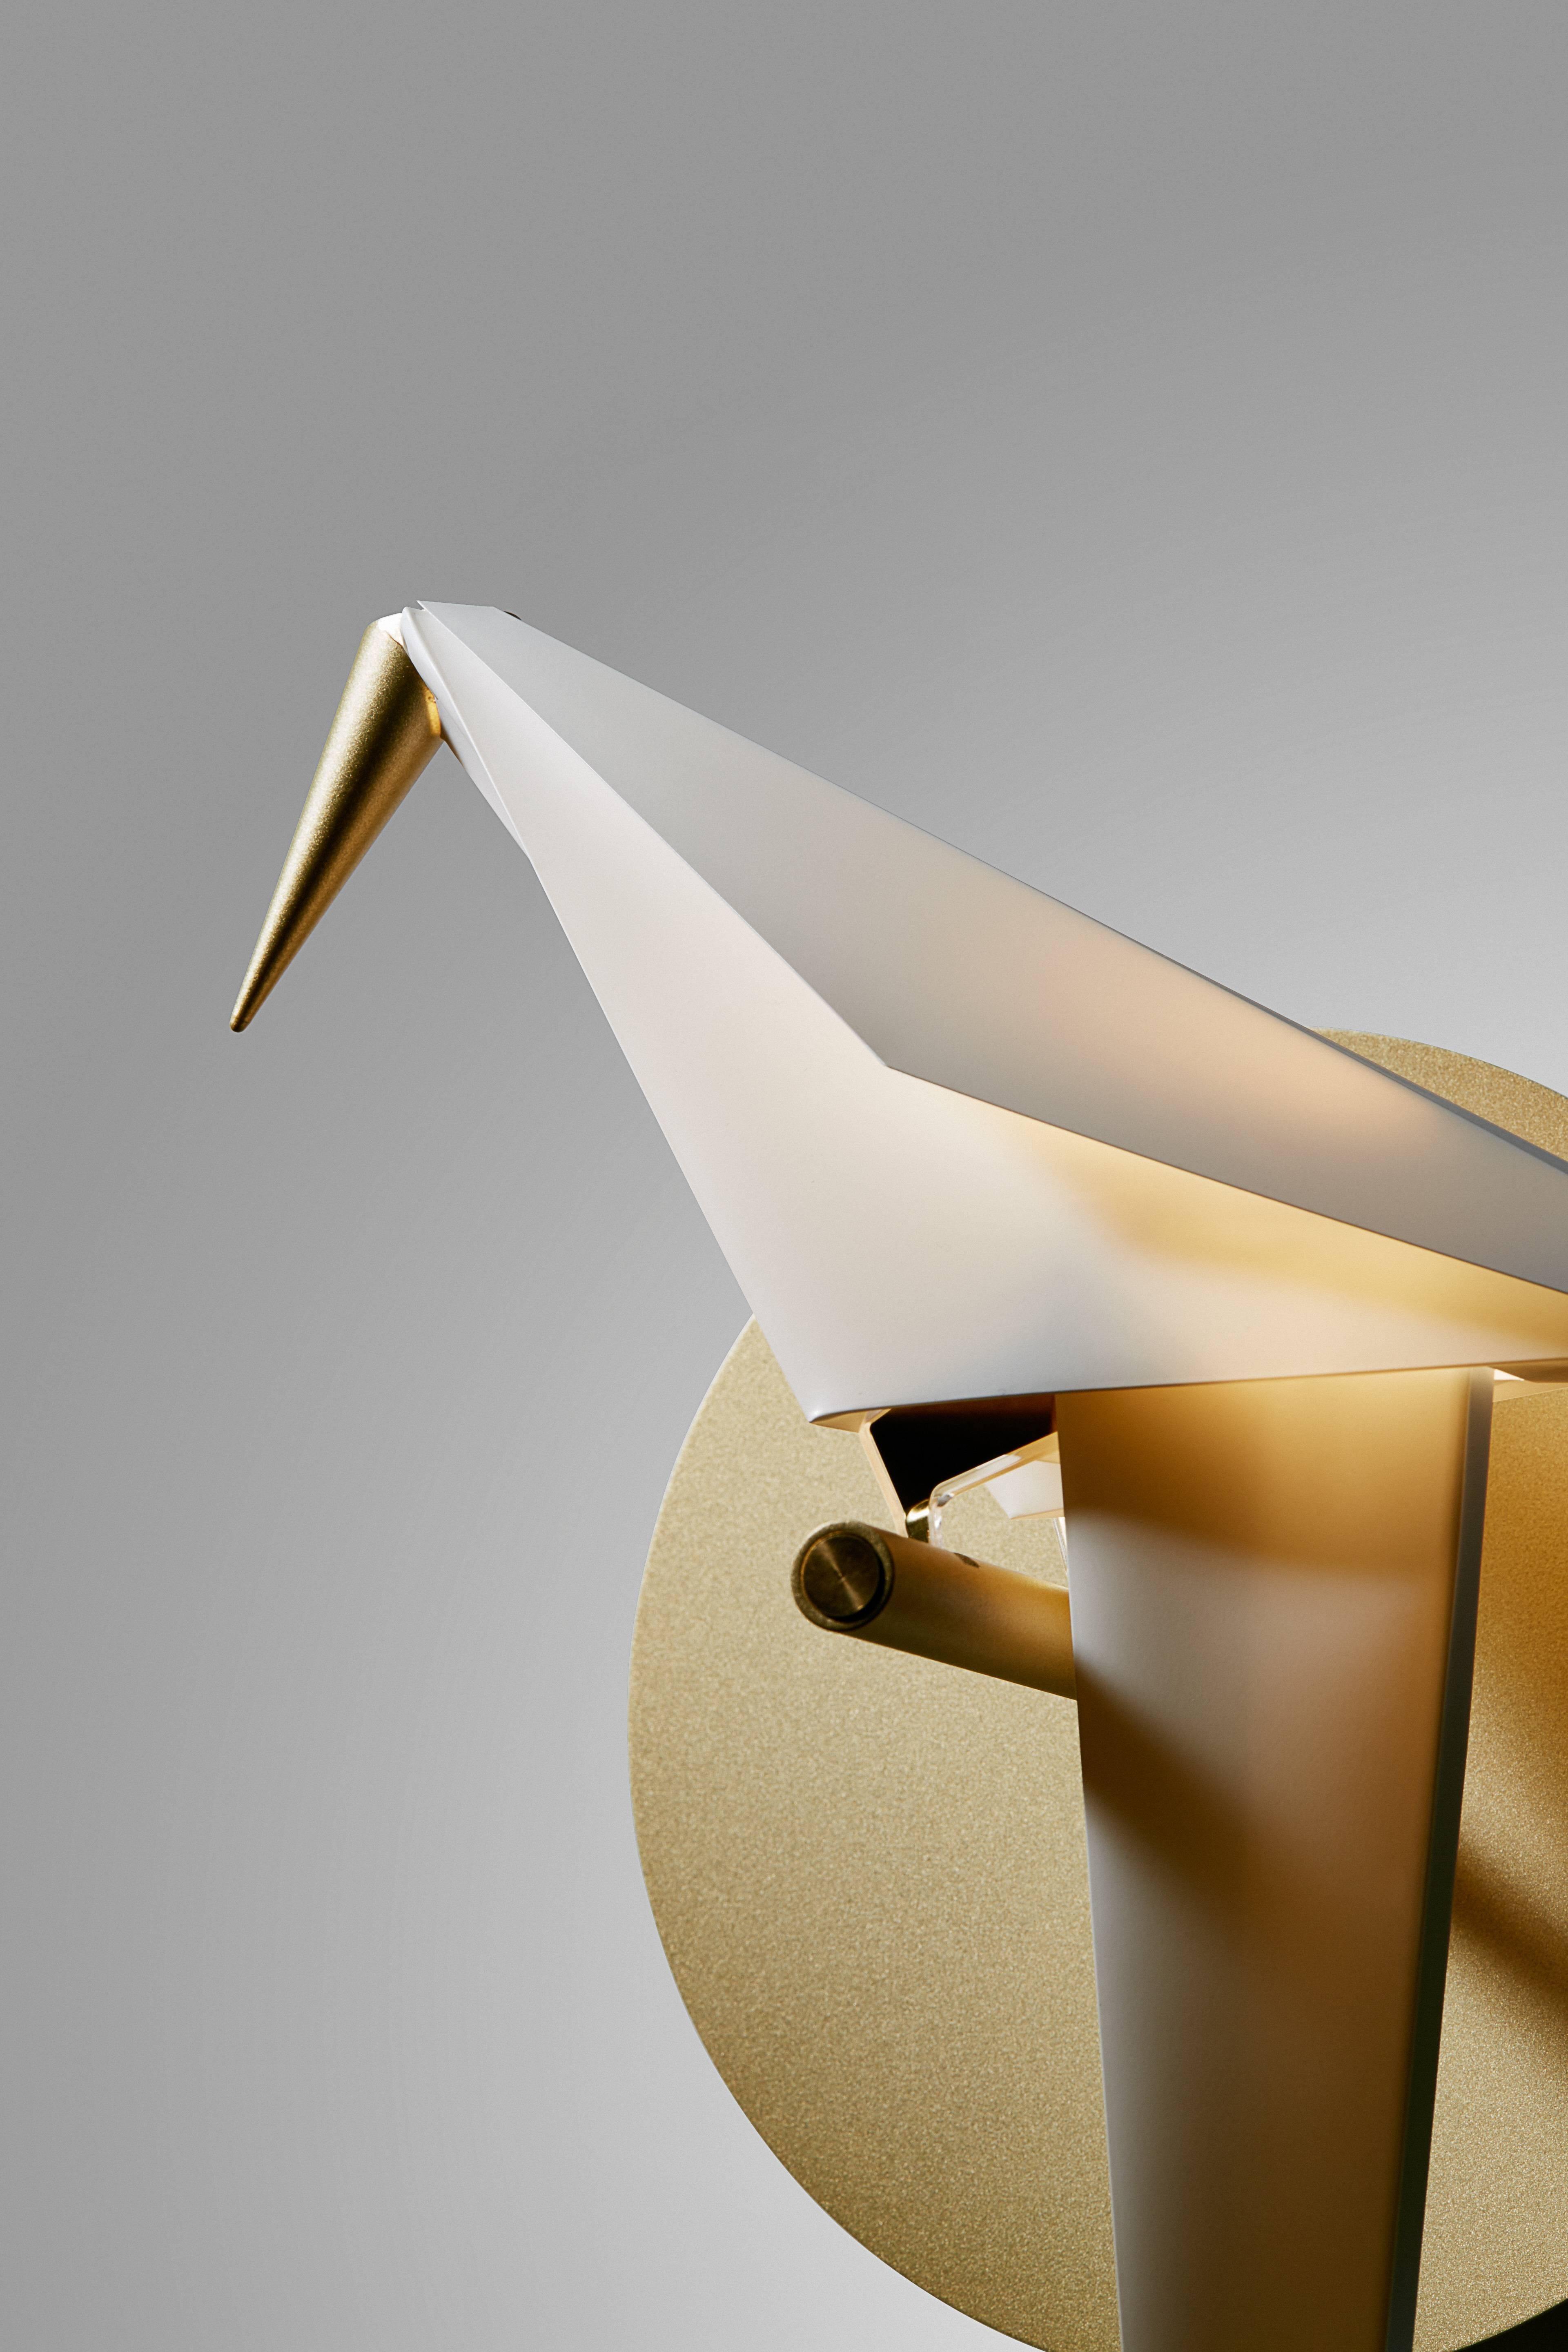 Moooi Perch LED Wall Sconce Light in Brass with Small ... on Small Wall Sconce Light id=47690